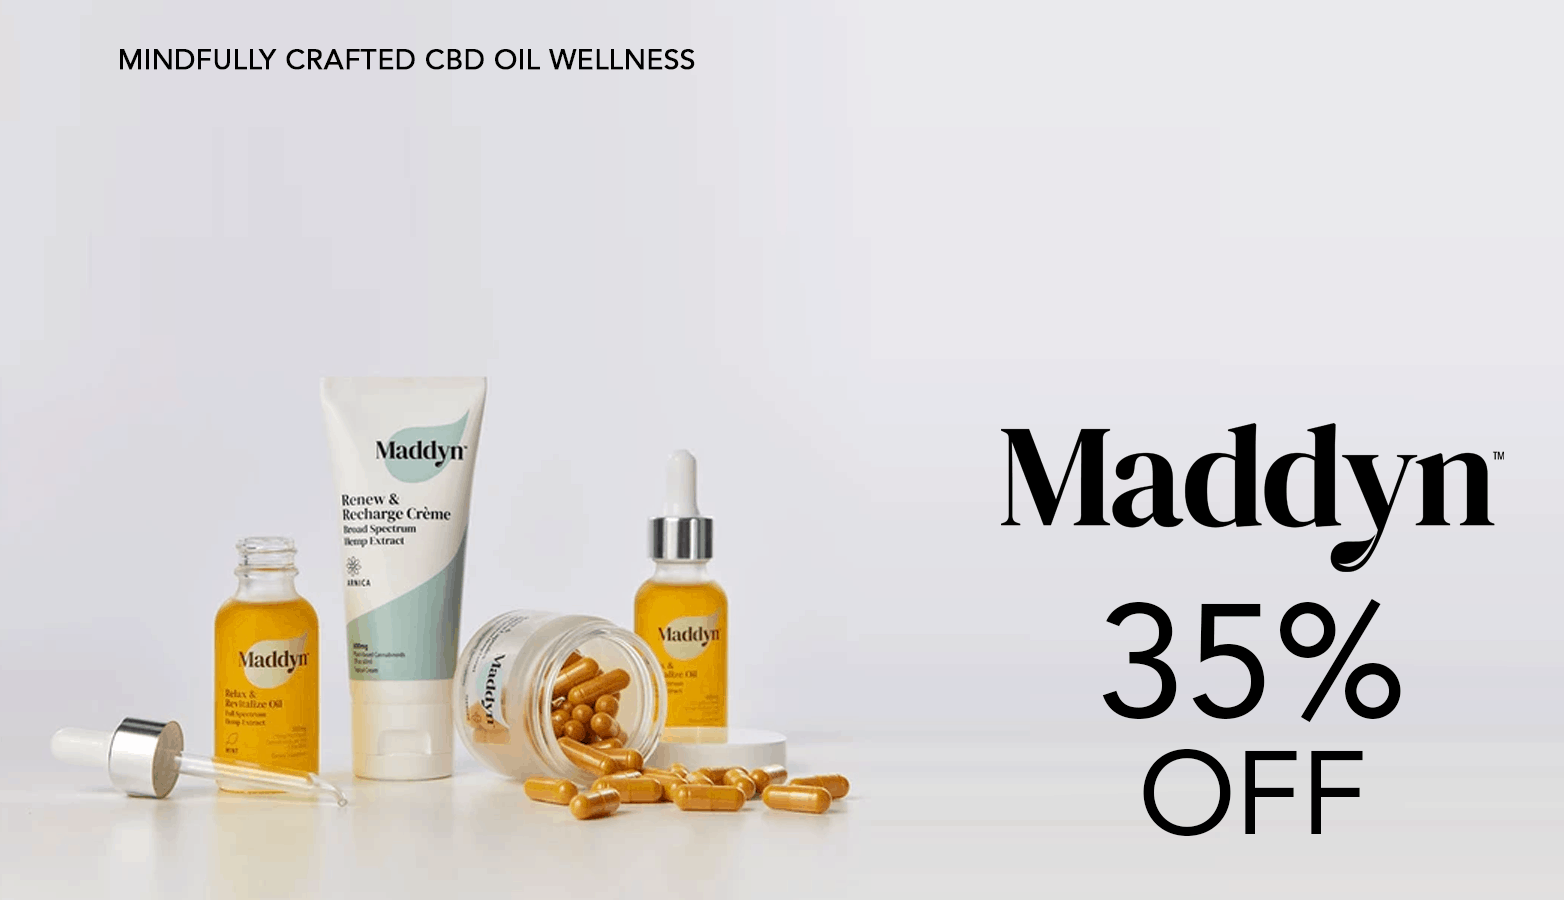 Maddyn CBD Coupon Code Offer Website